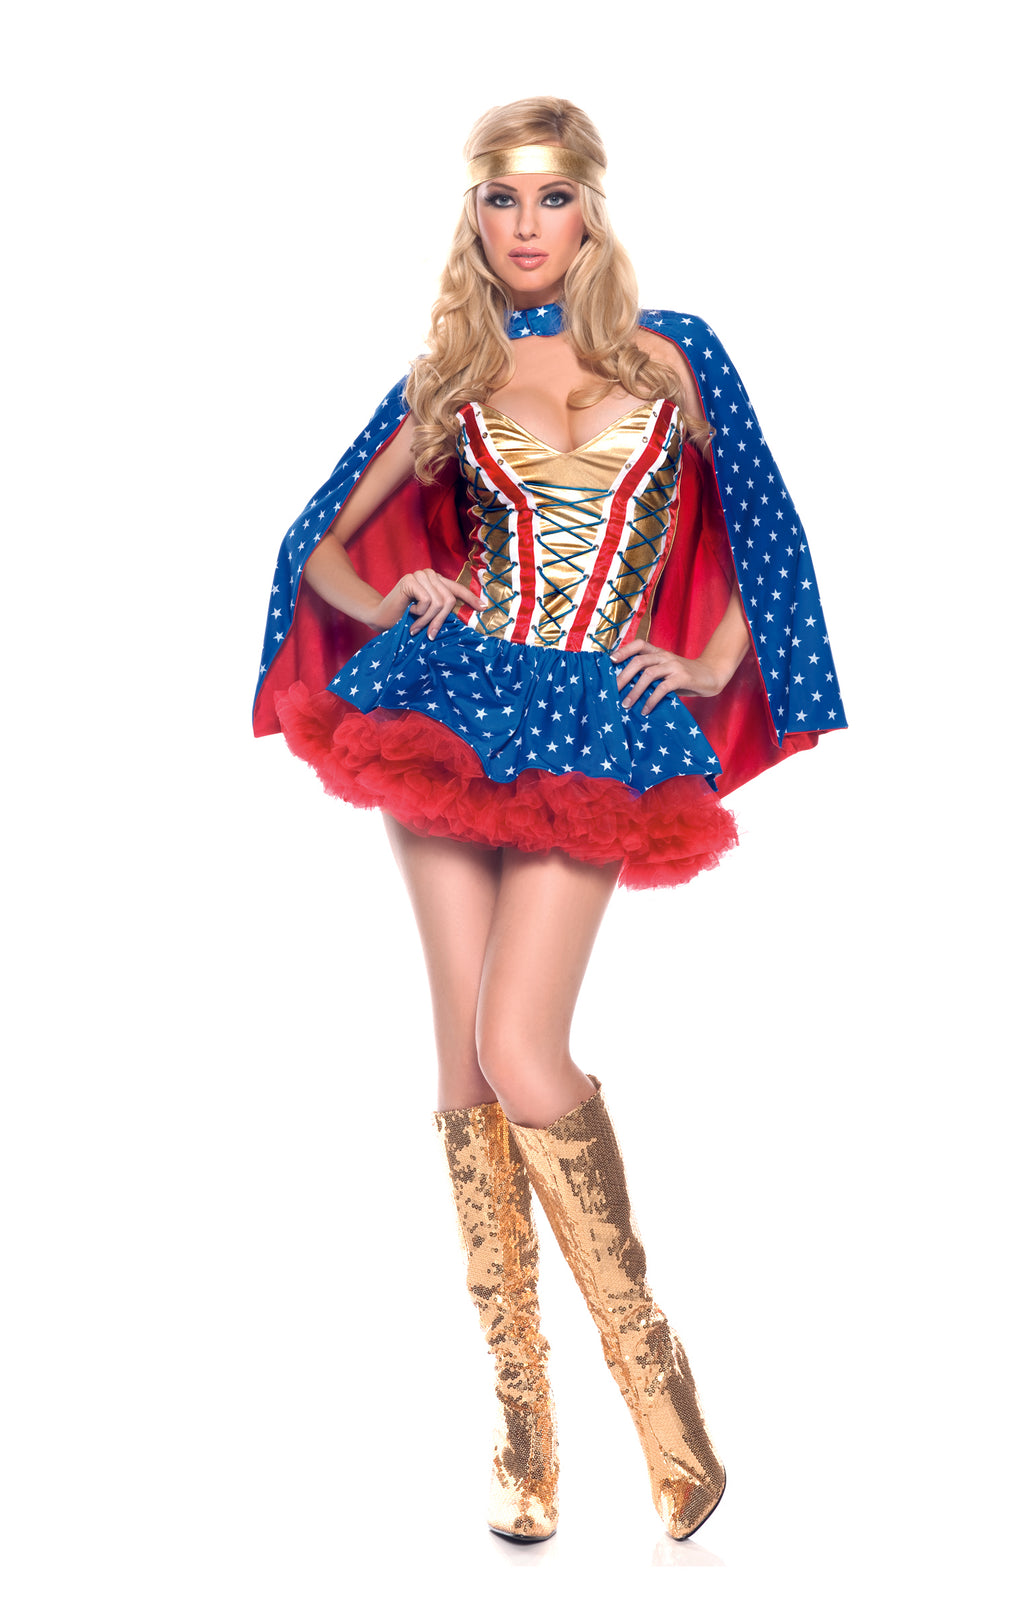 Adult-Women's-3-Piece-Super-Girl-Wonder-Woman-Halloween-Party-Costume